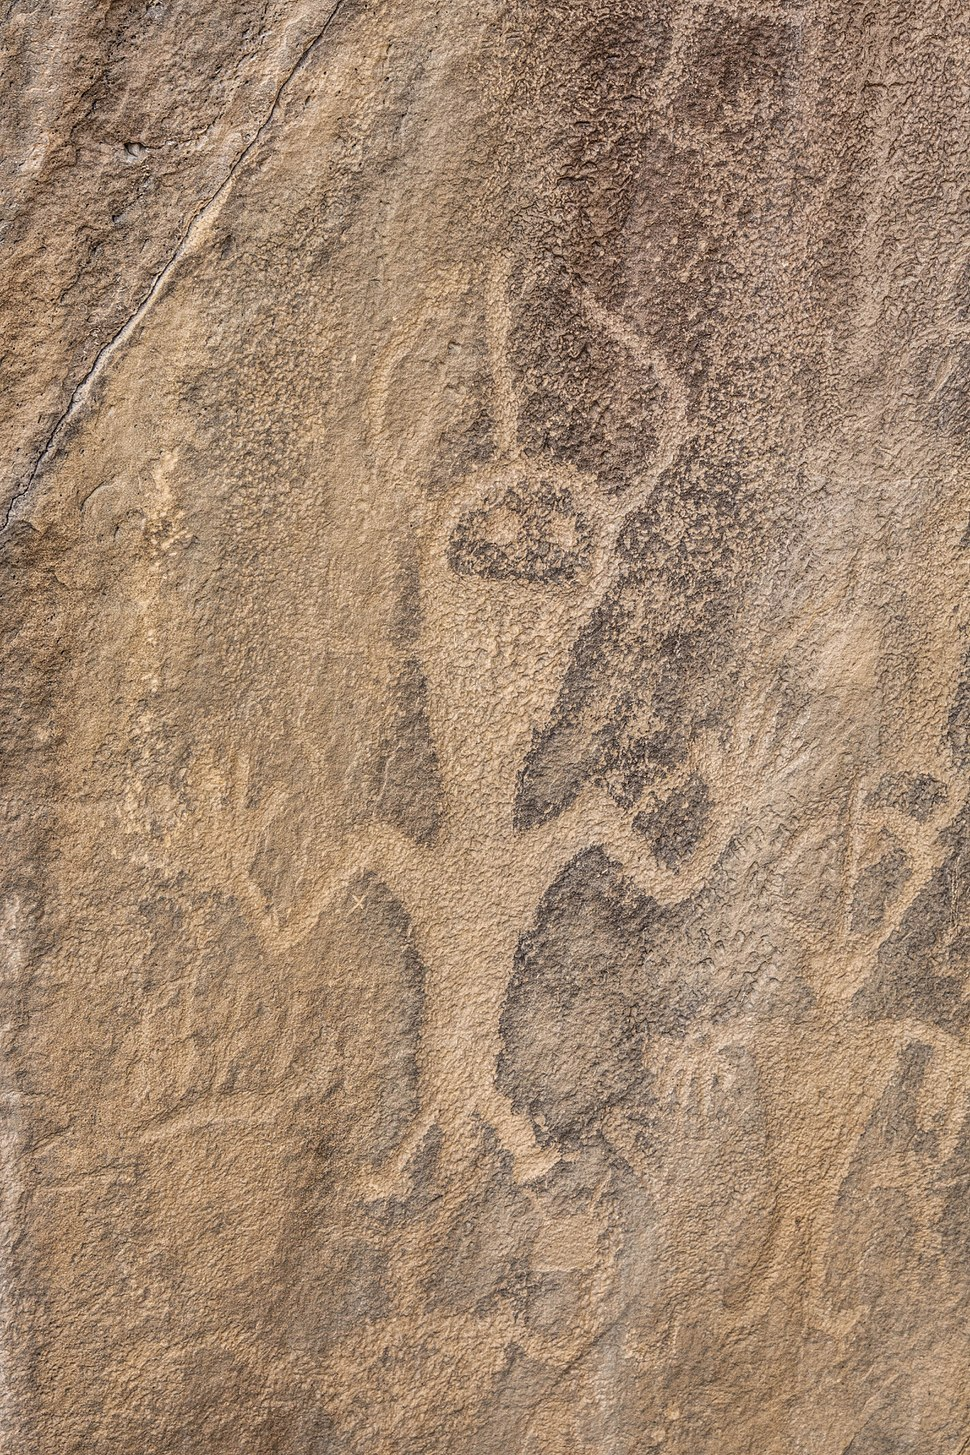 Anthropomorph Rock Art (18663446909)